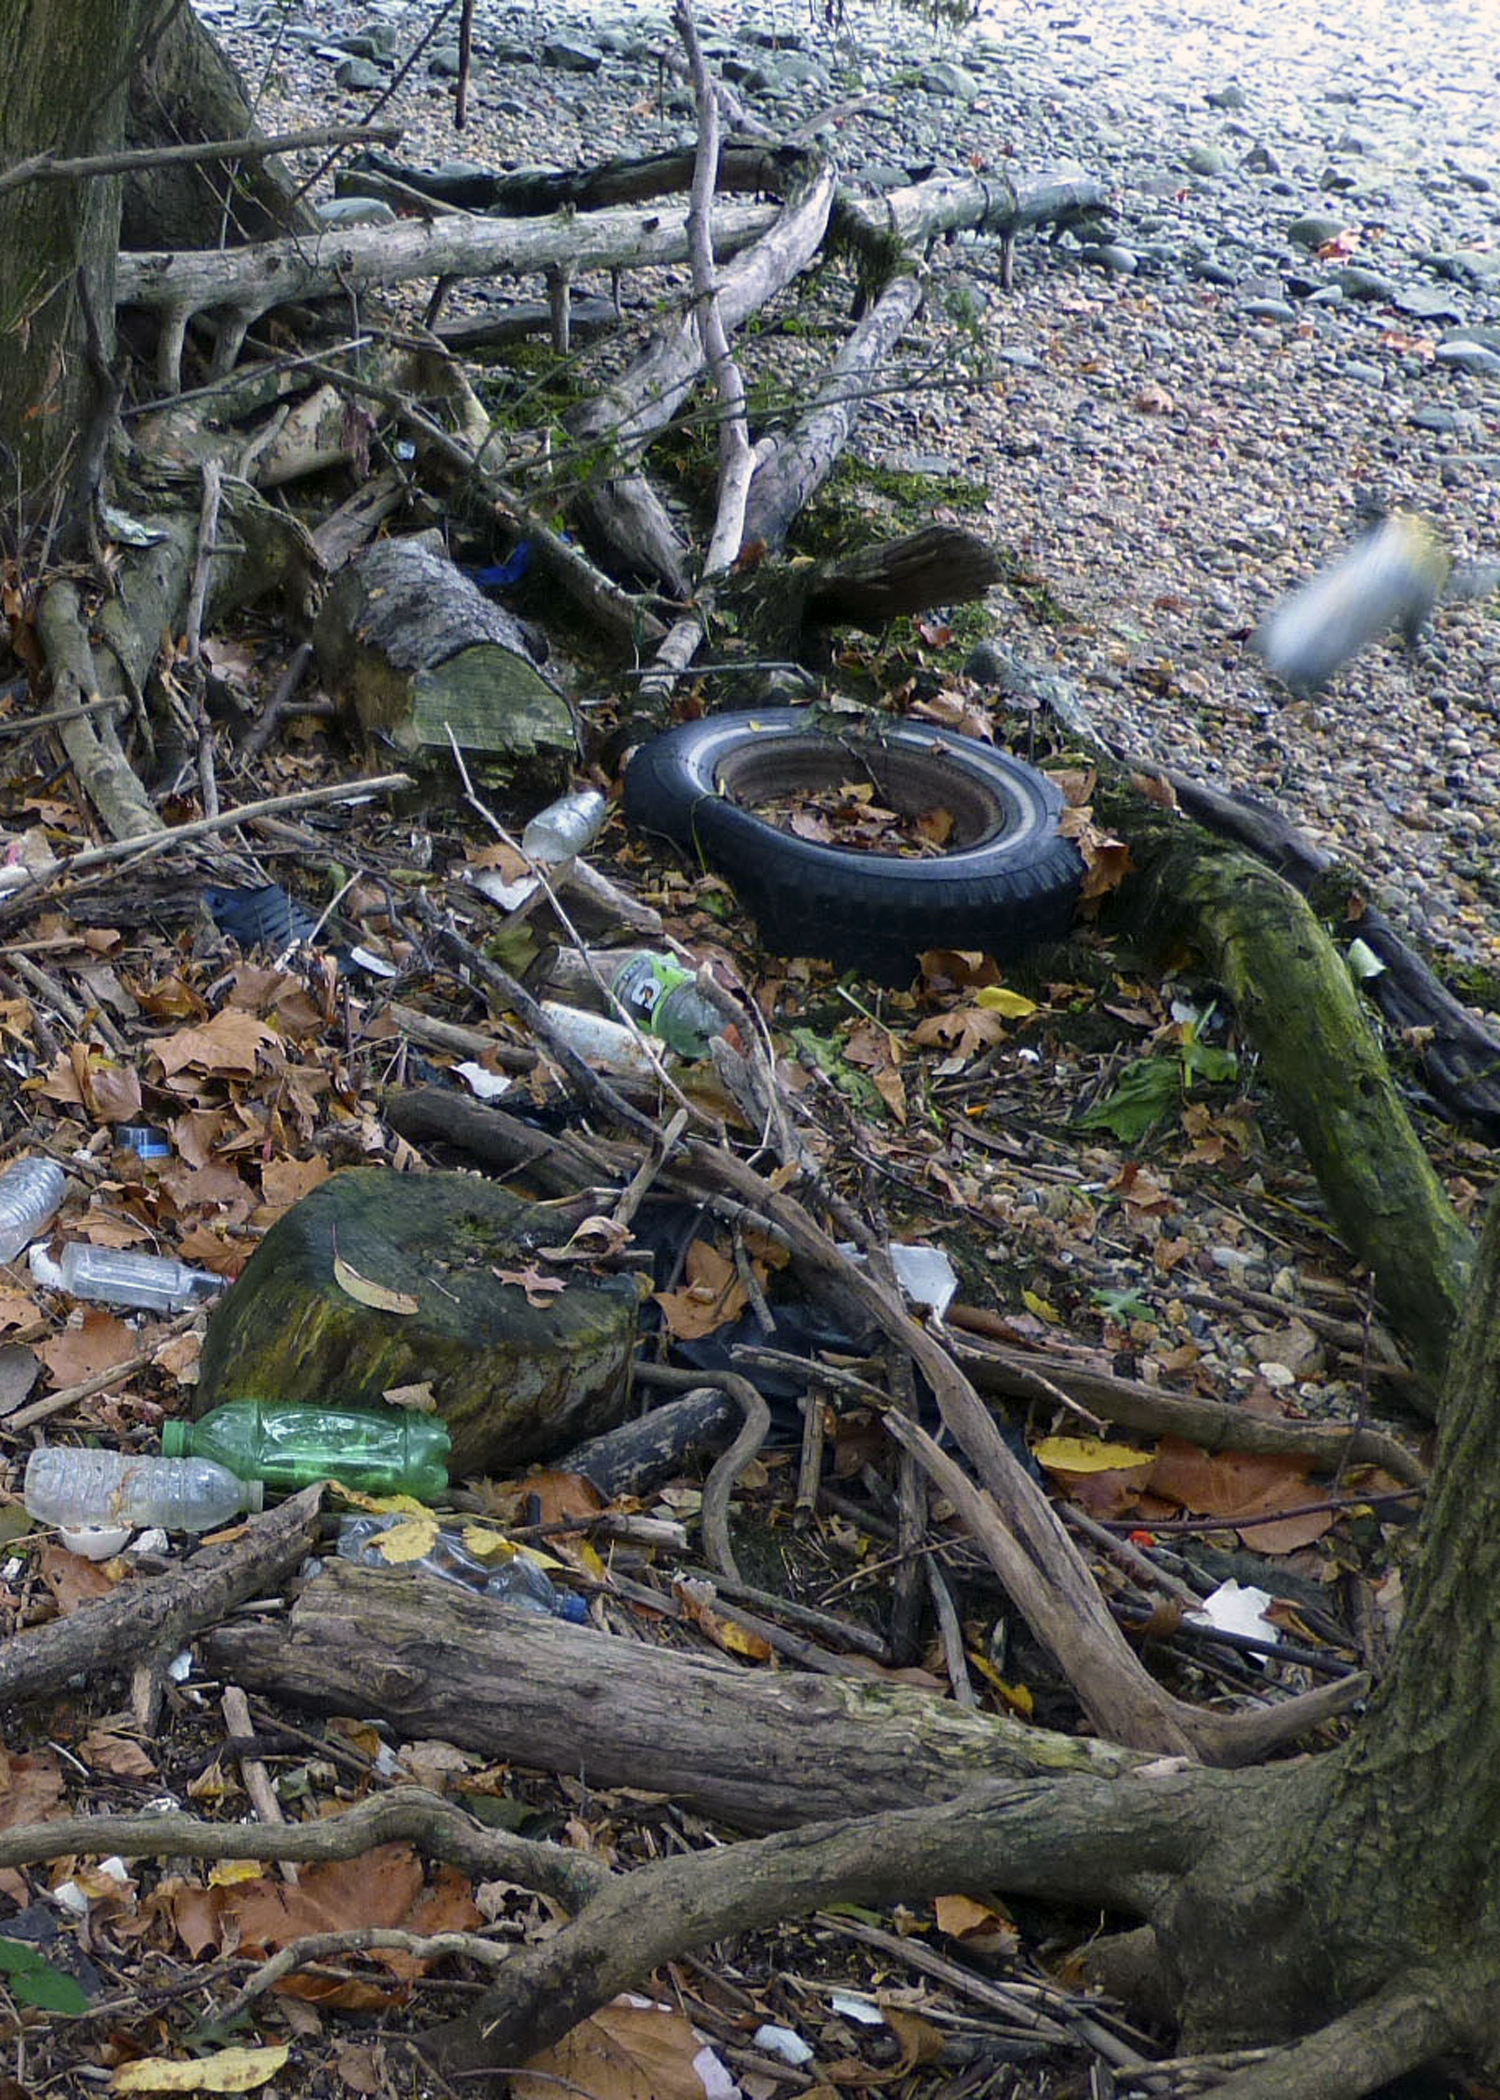 Tire and Trash on the River